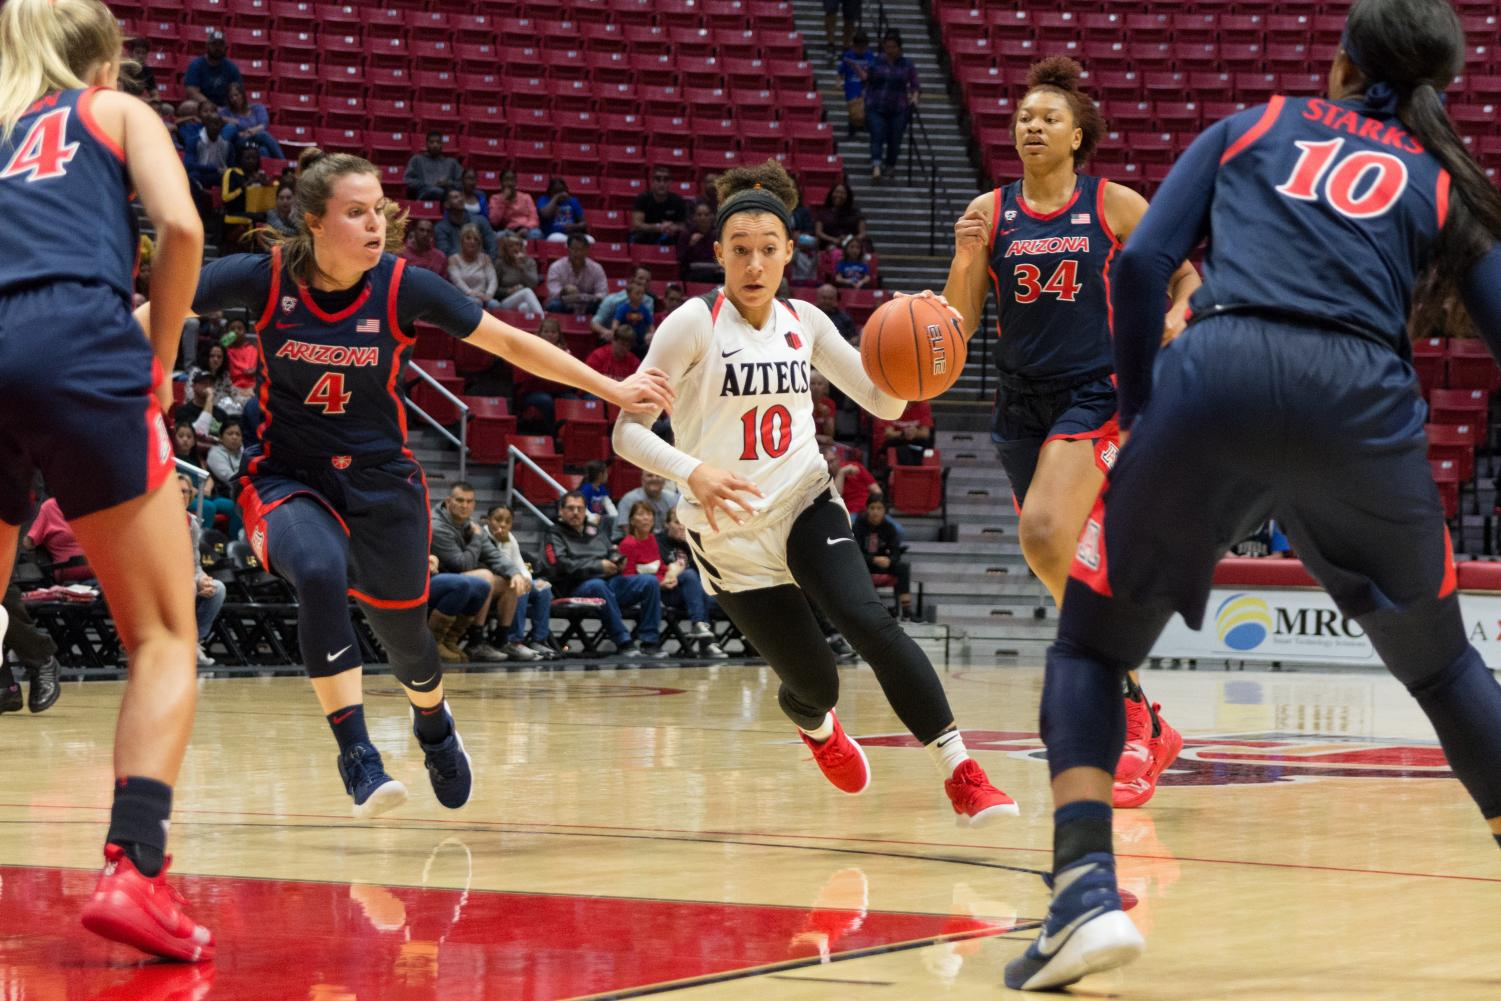 Sophomore guard Naje Murray drives into the lane during the Aztecs 69-60 loss to Arizona on Dec. 2 at Viejas Arena.